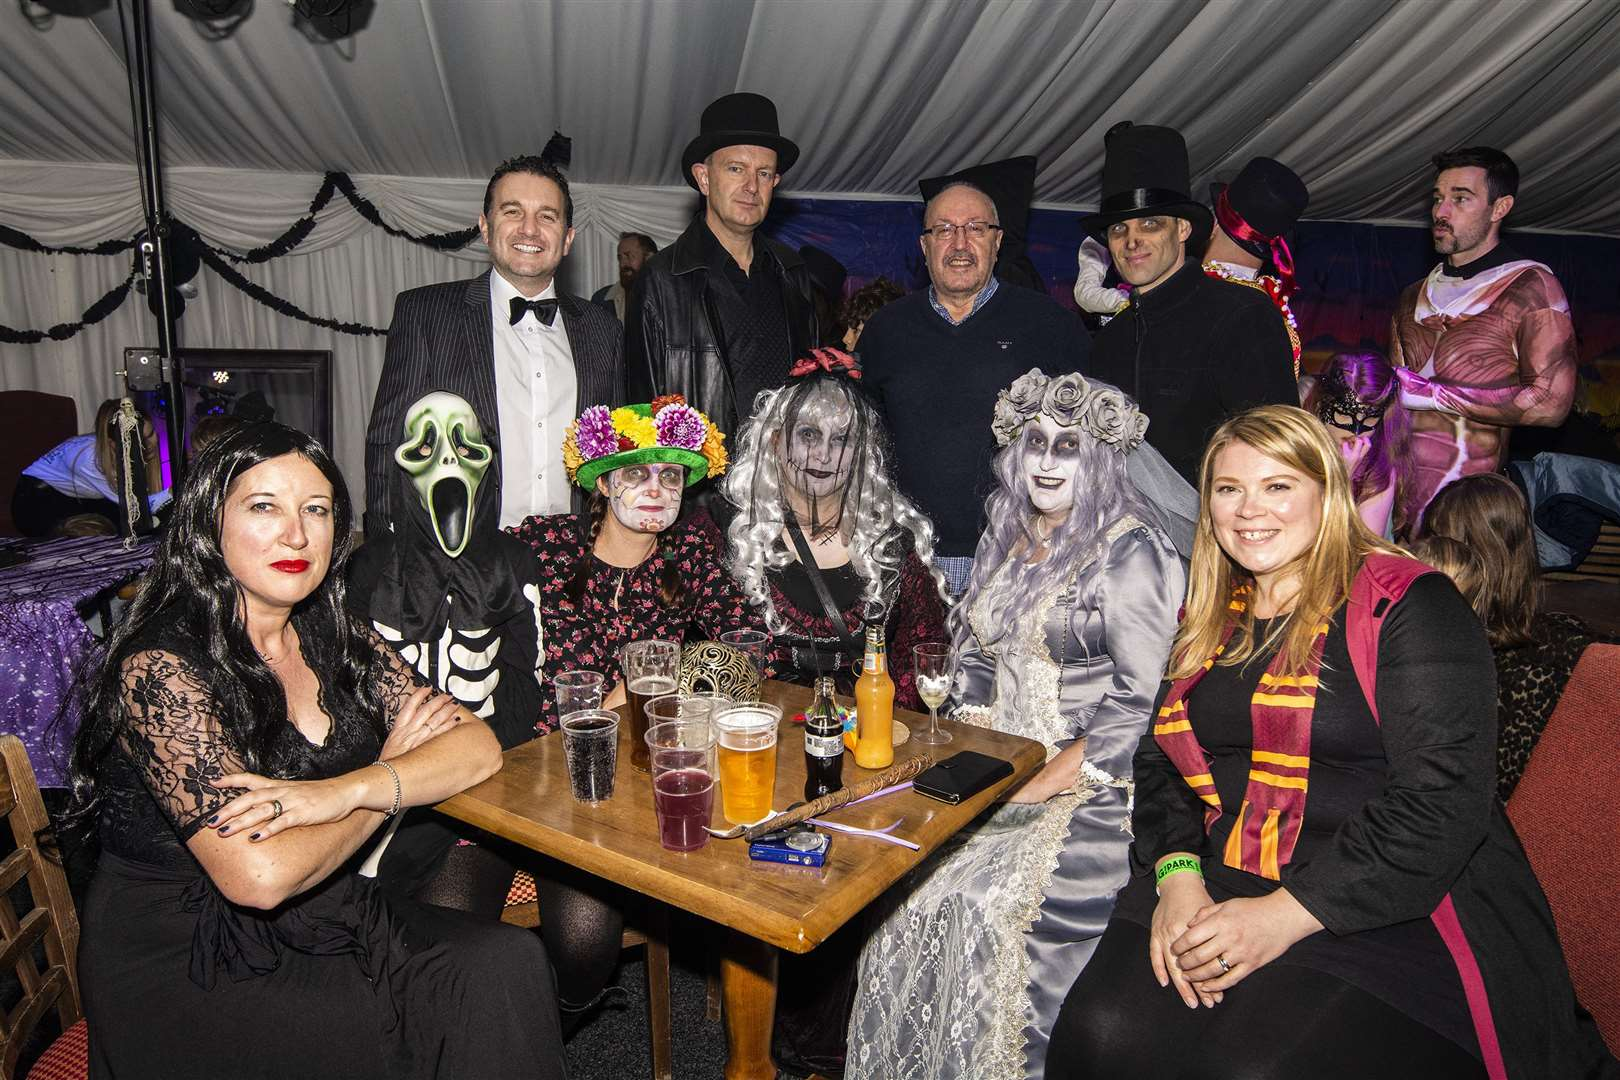 Geoff Dixon, back row third from the left, with a group of spooky revellers during the event. Picture by Al Pulford.